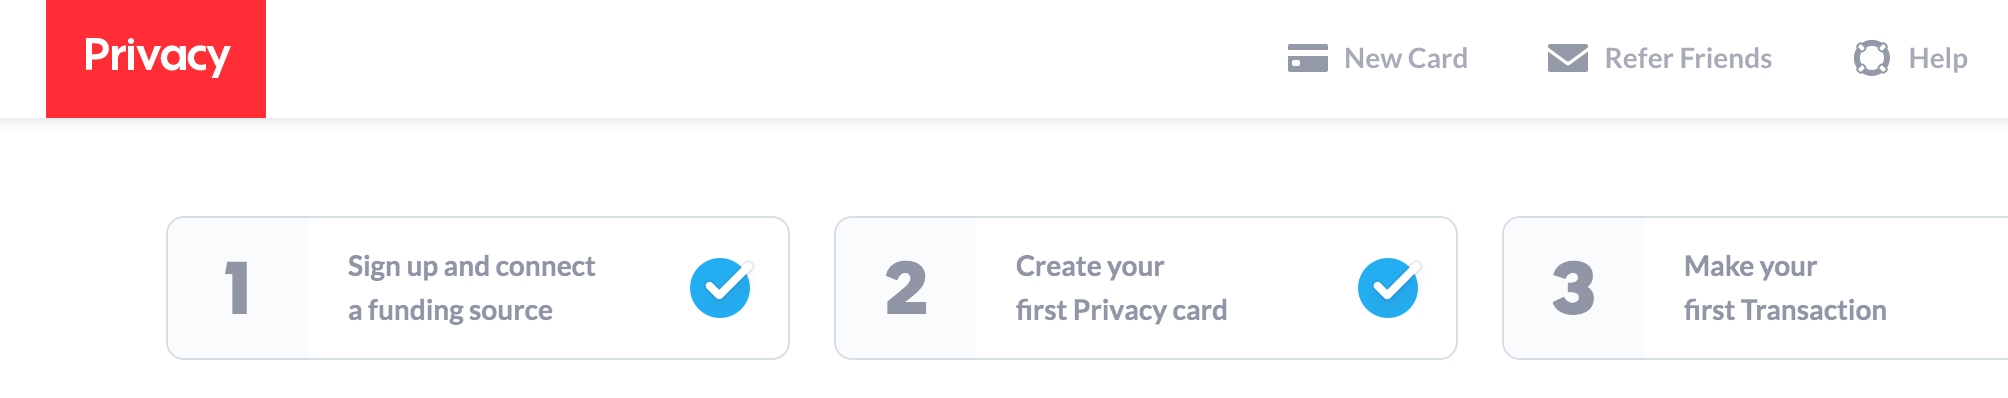 Privacy.com tutorial displayed in one photo.